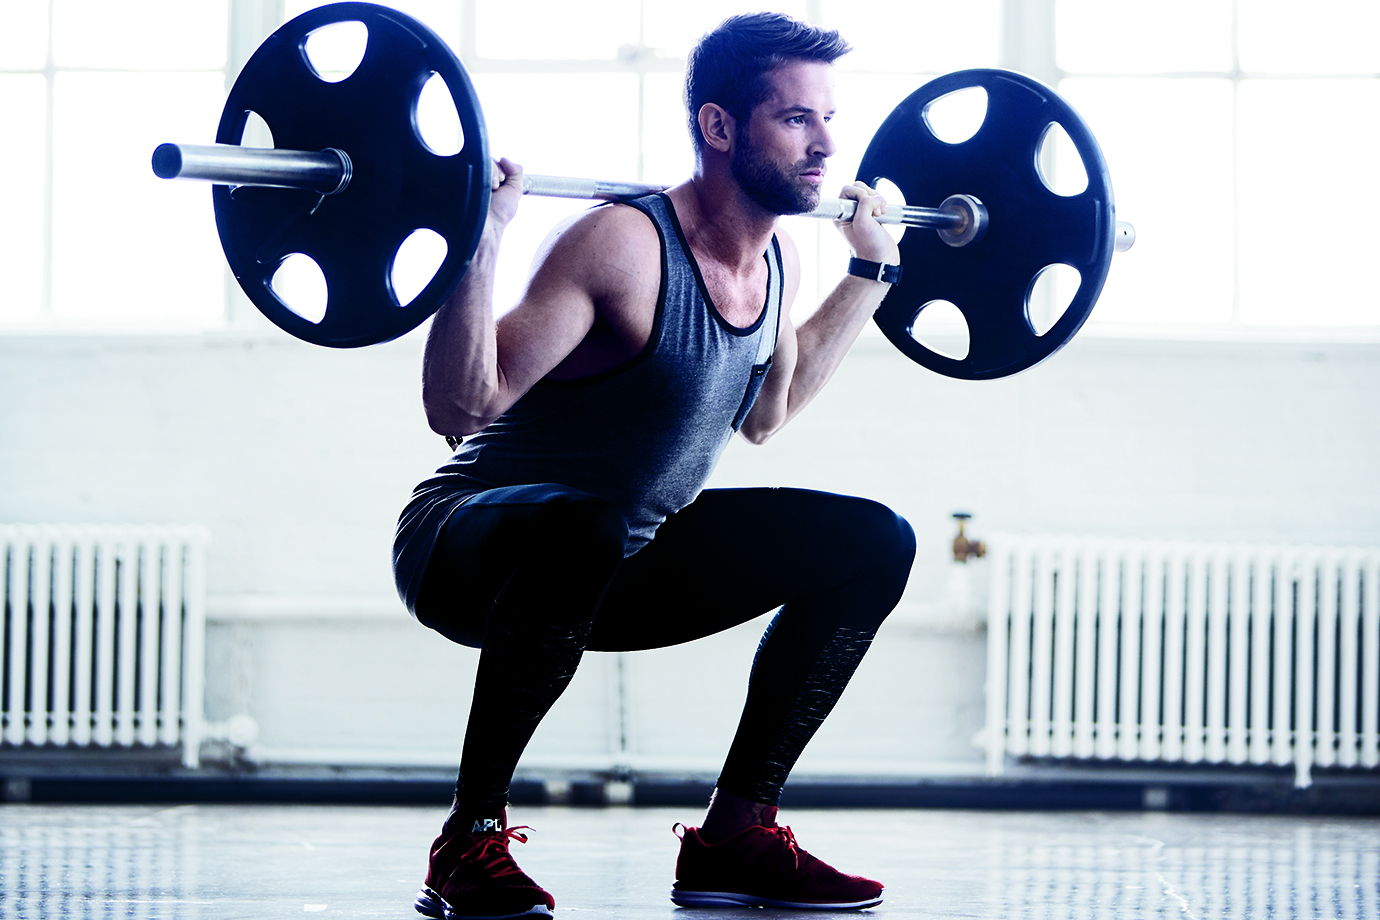 Some Excercises to Build Muscles at Home